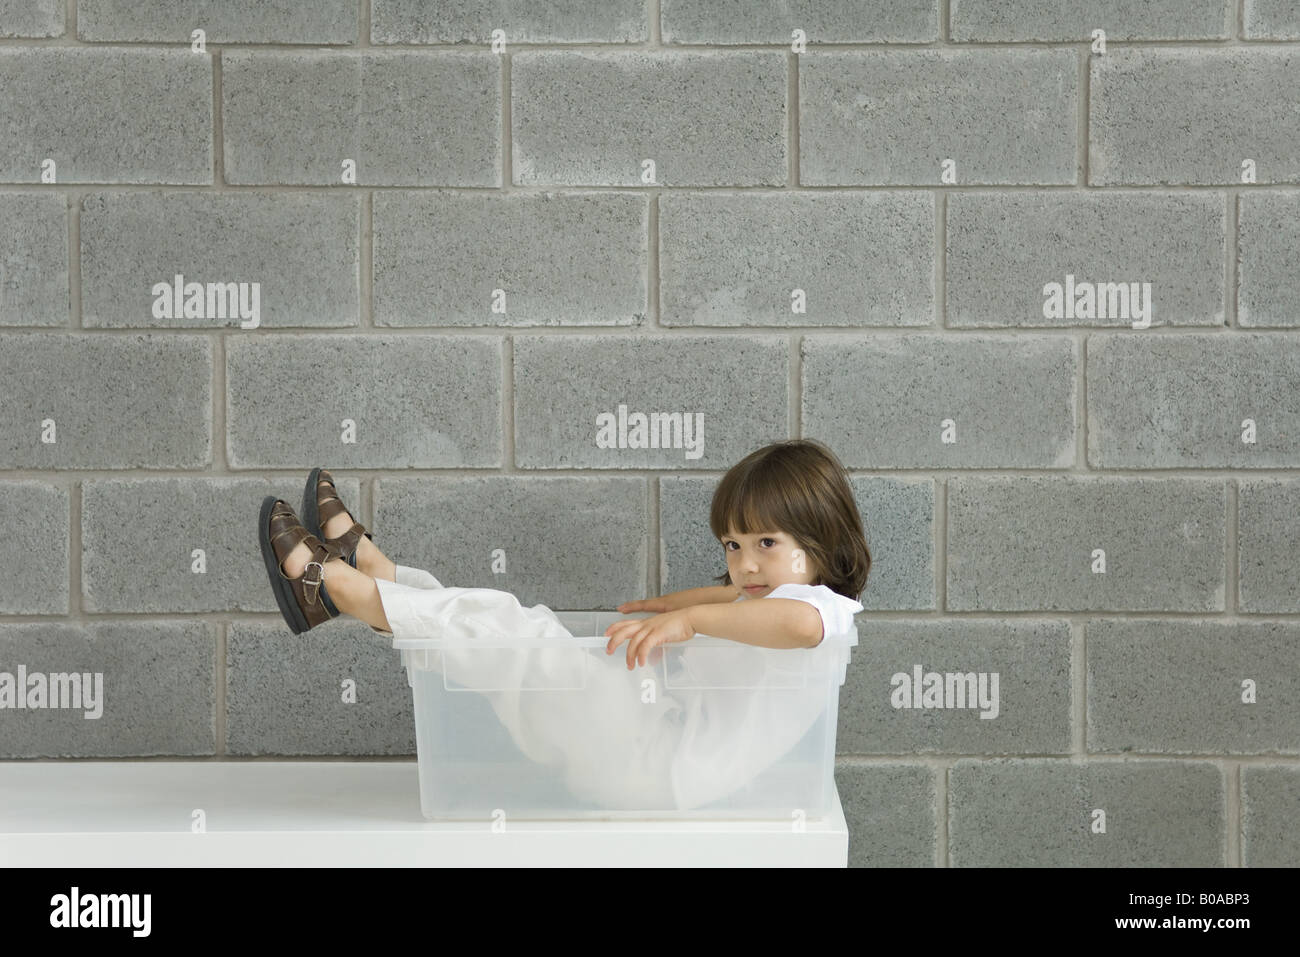 Little boy sitting inside plastic storage container, side view - Stock Image